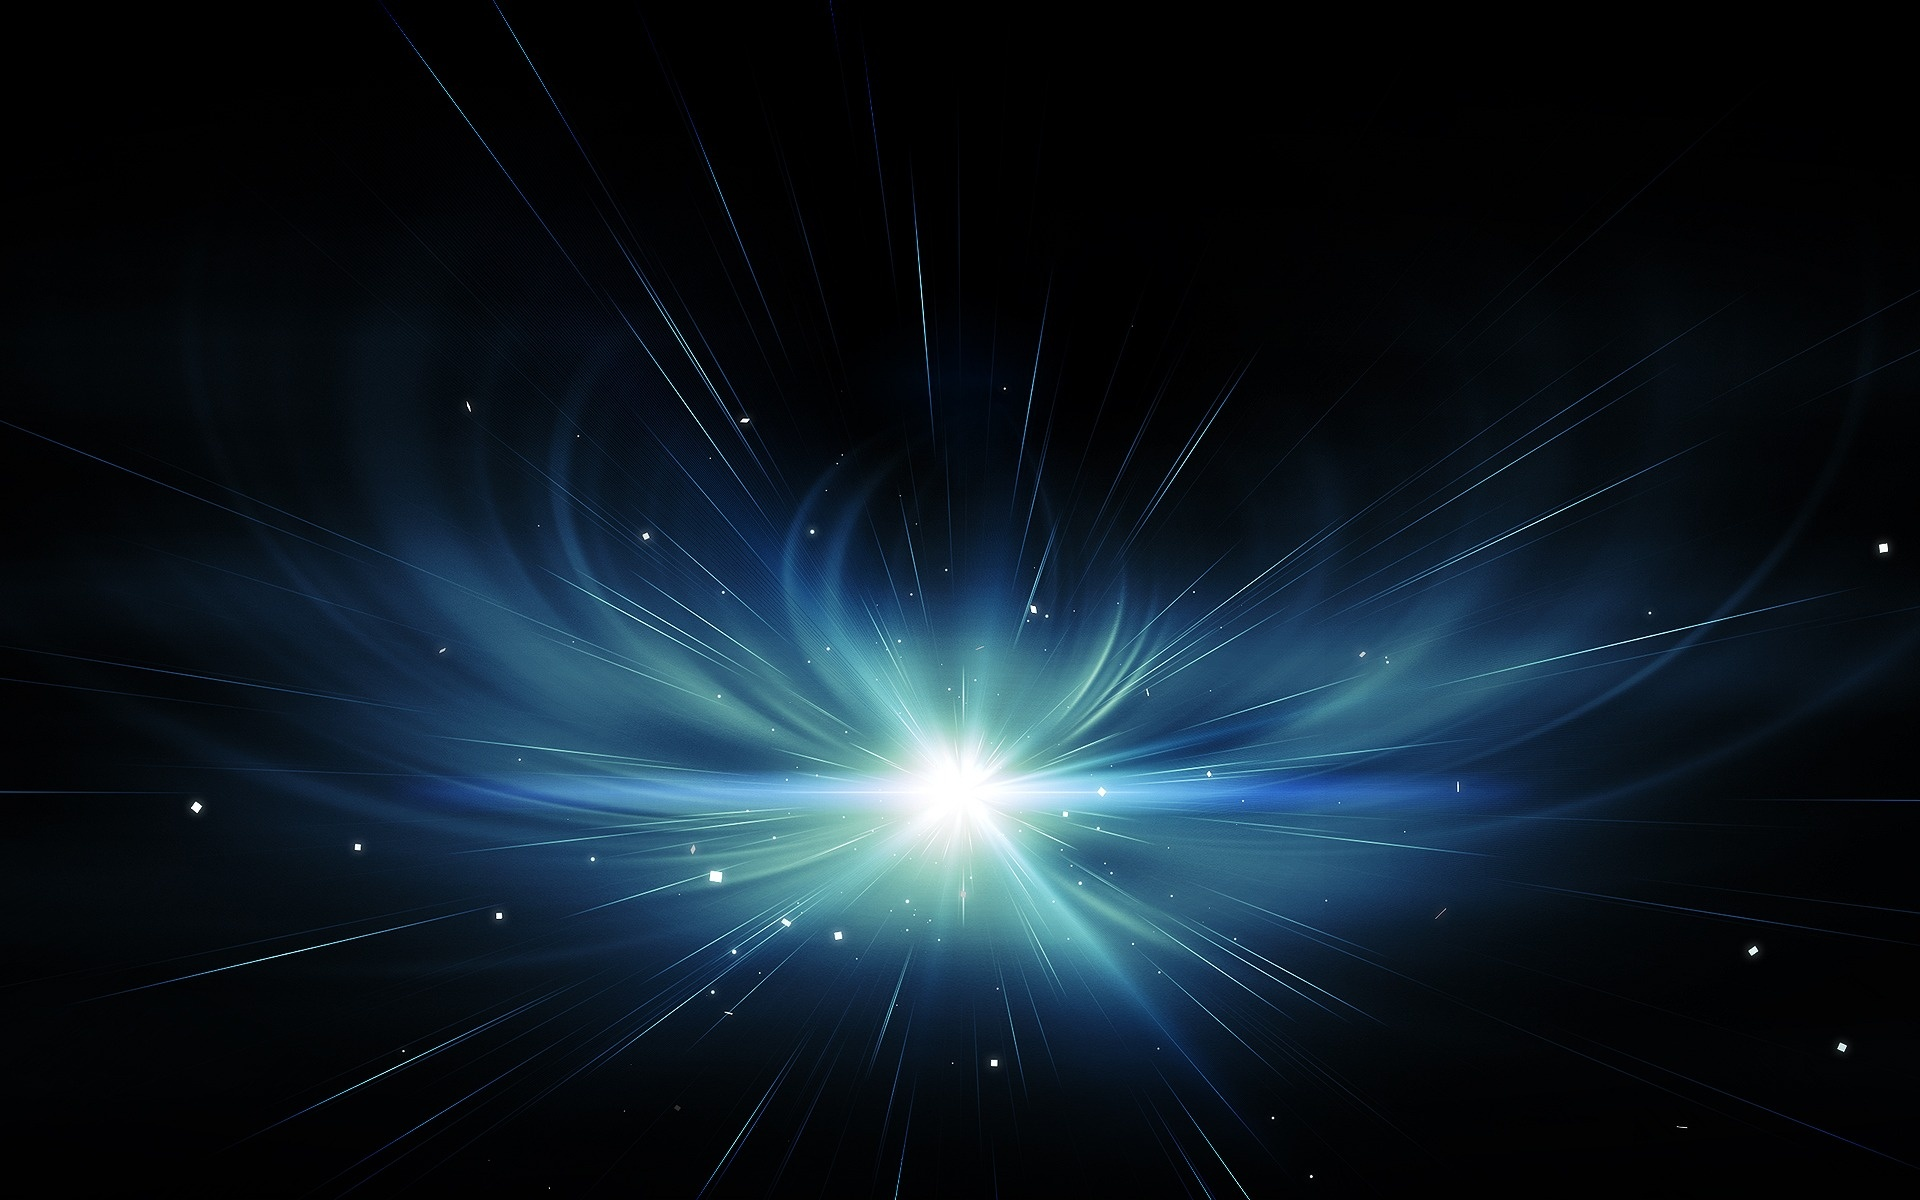 abstract wallpapers hd glow spot